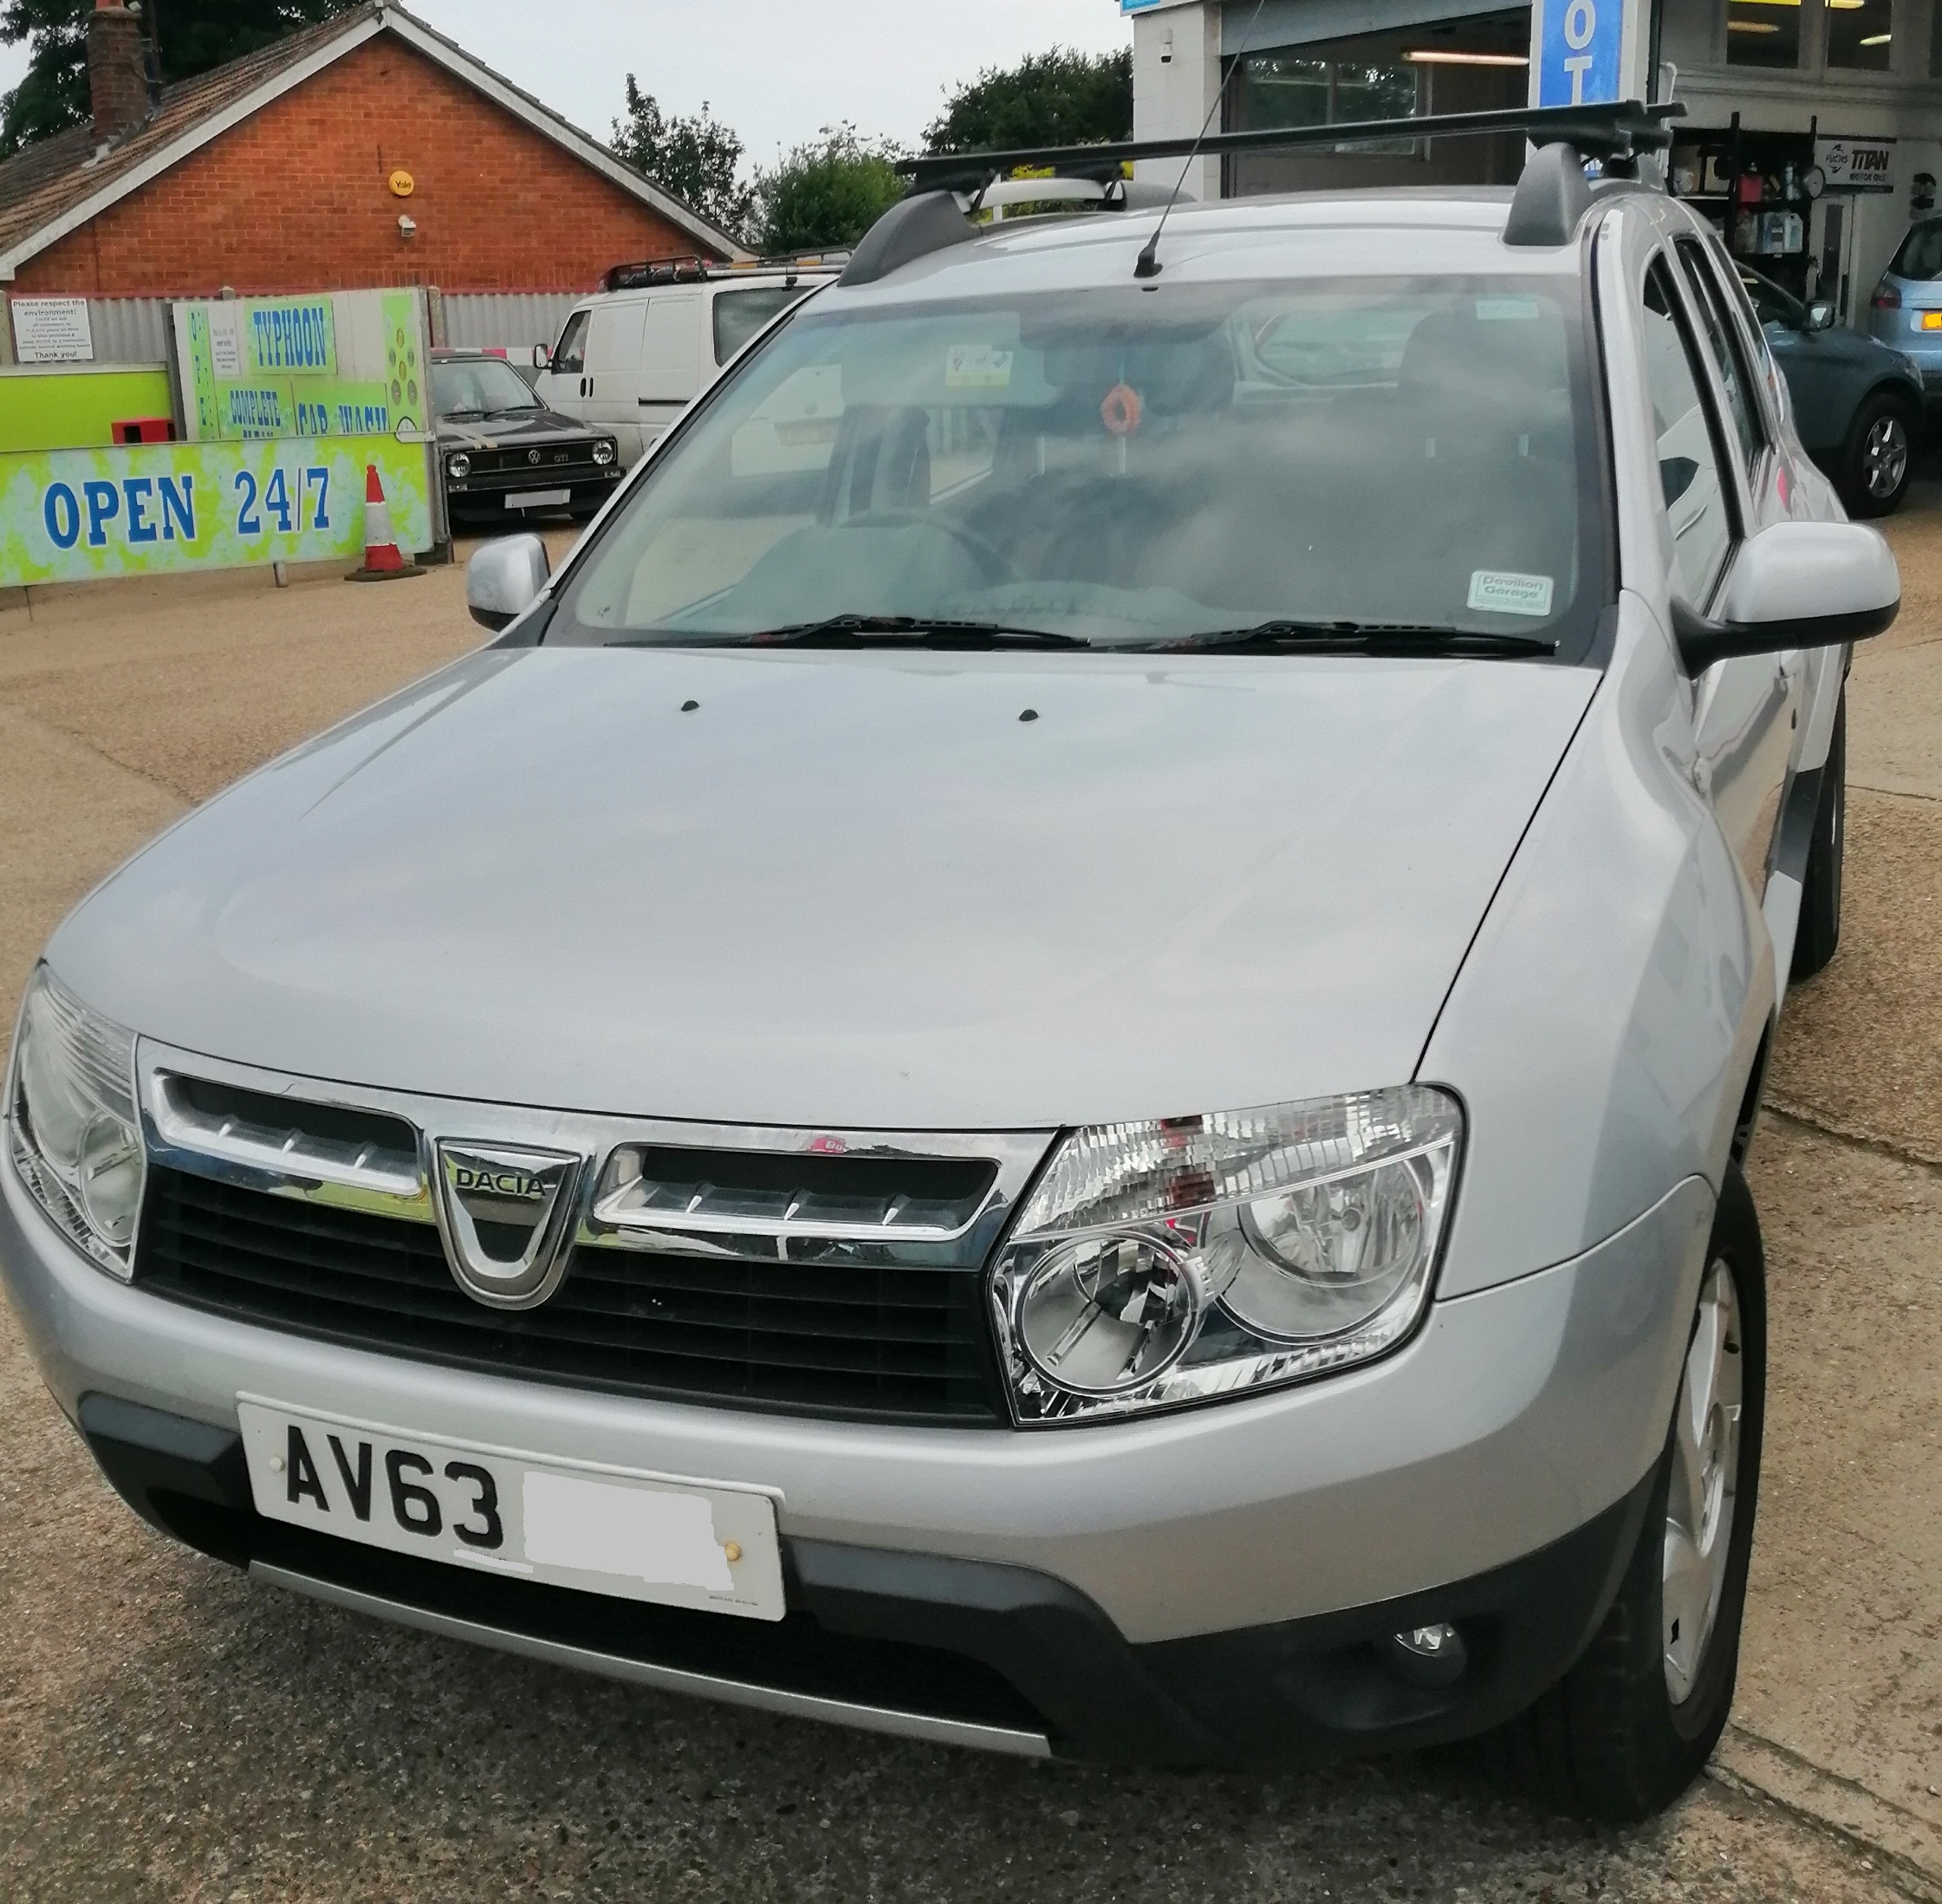 Dacia Duster Laureate 2013 / 63 1461cc - Diesel *** ONLY 40,000 miles *** Full Service History Spare Key £130 per year Road Tax £6295